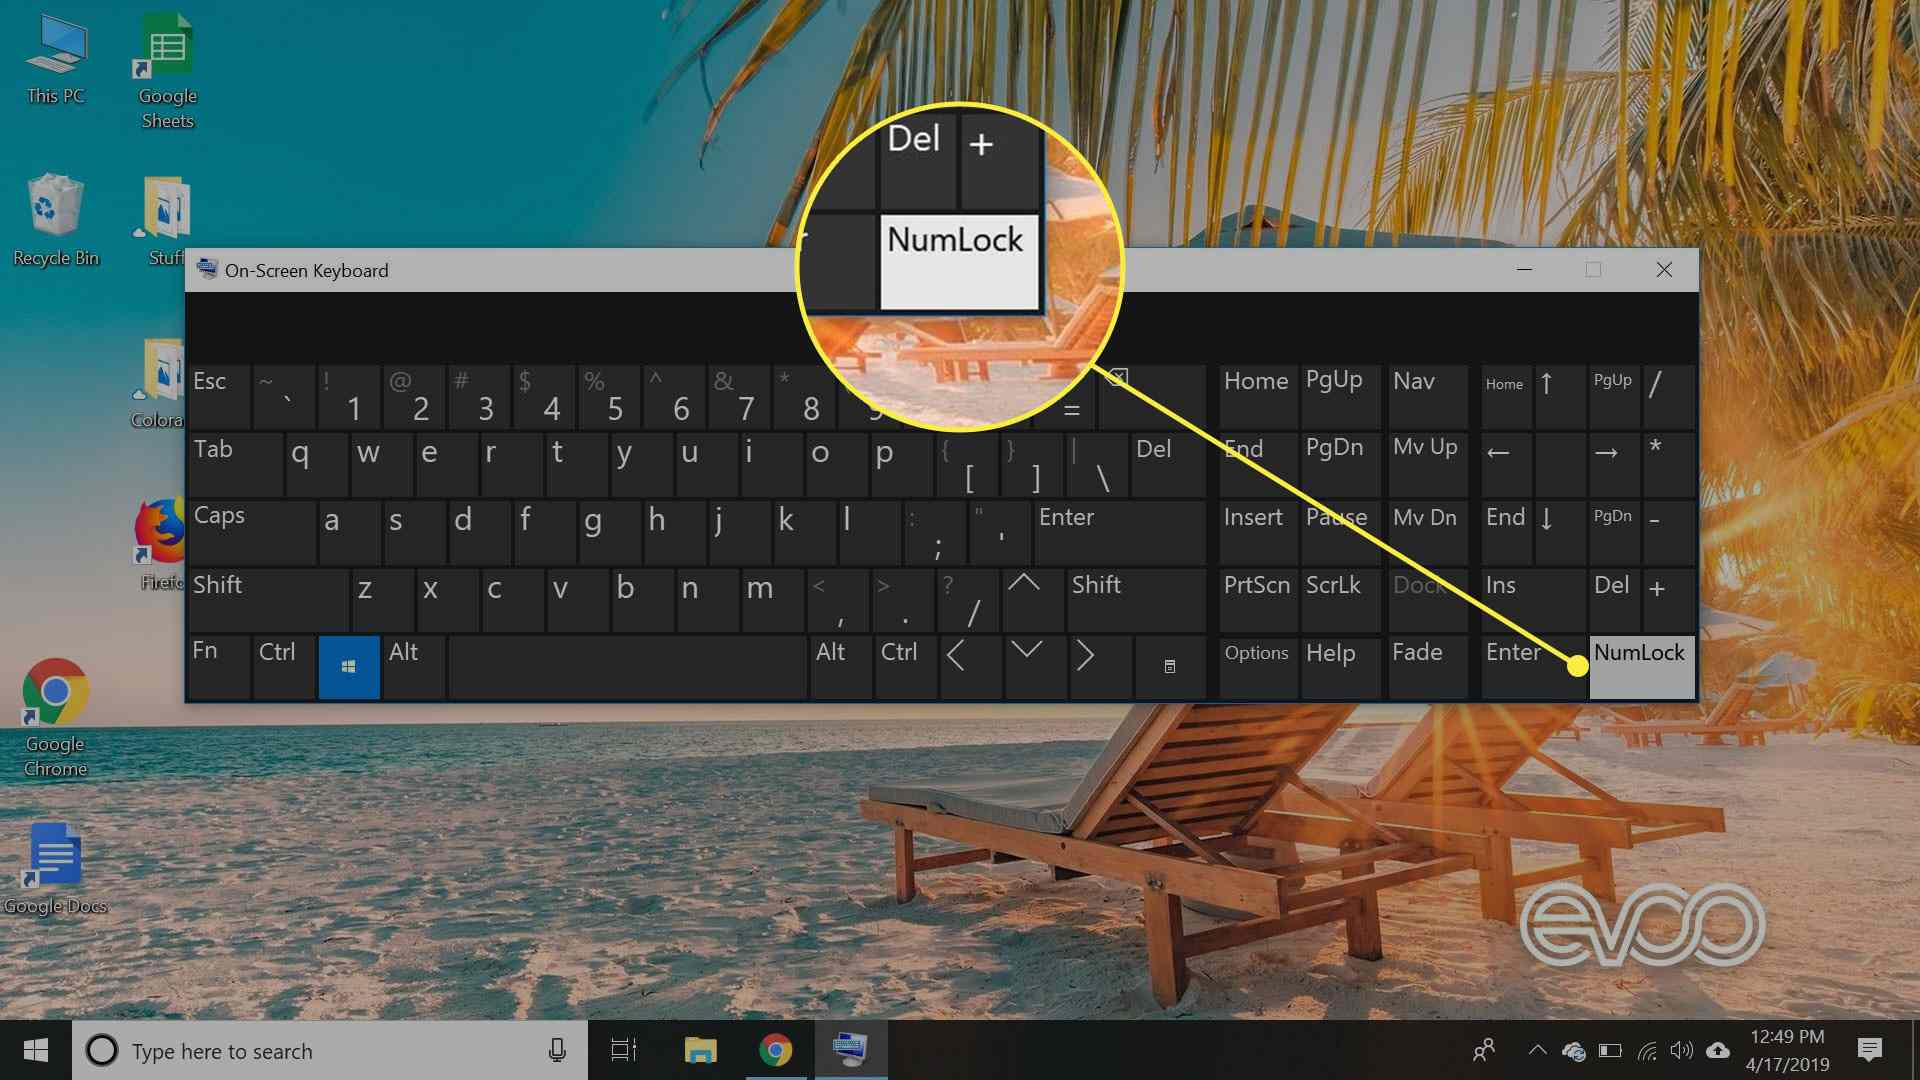 A screenshot of Windows 10's onscreen keyboard with the NumLock key highlighted